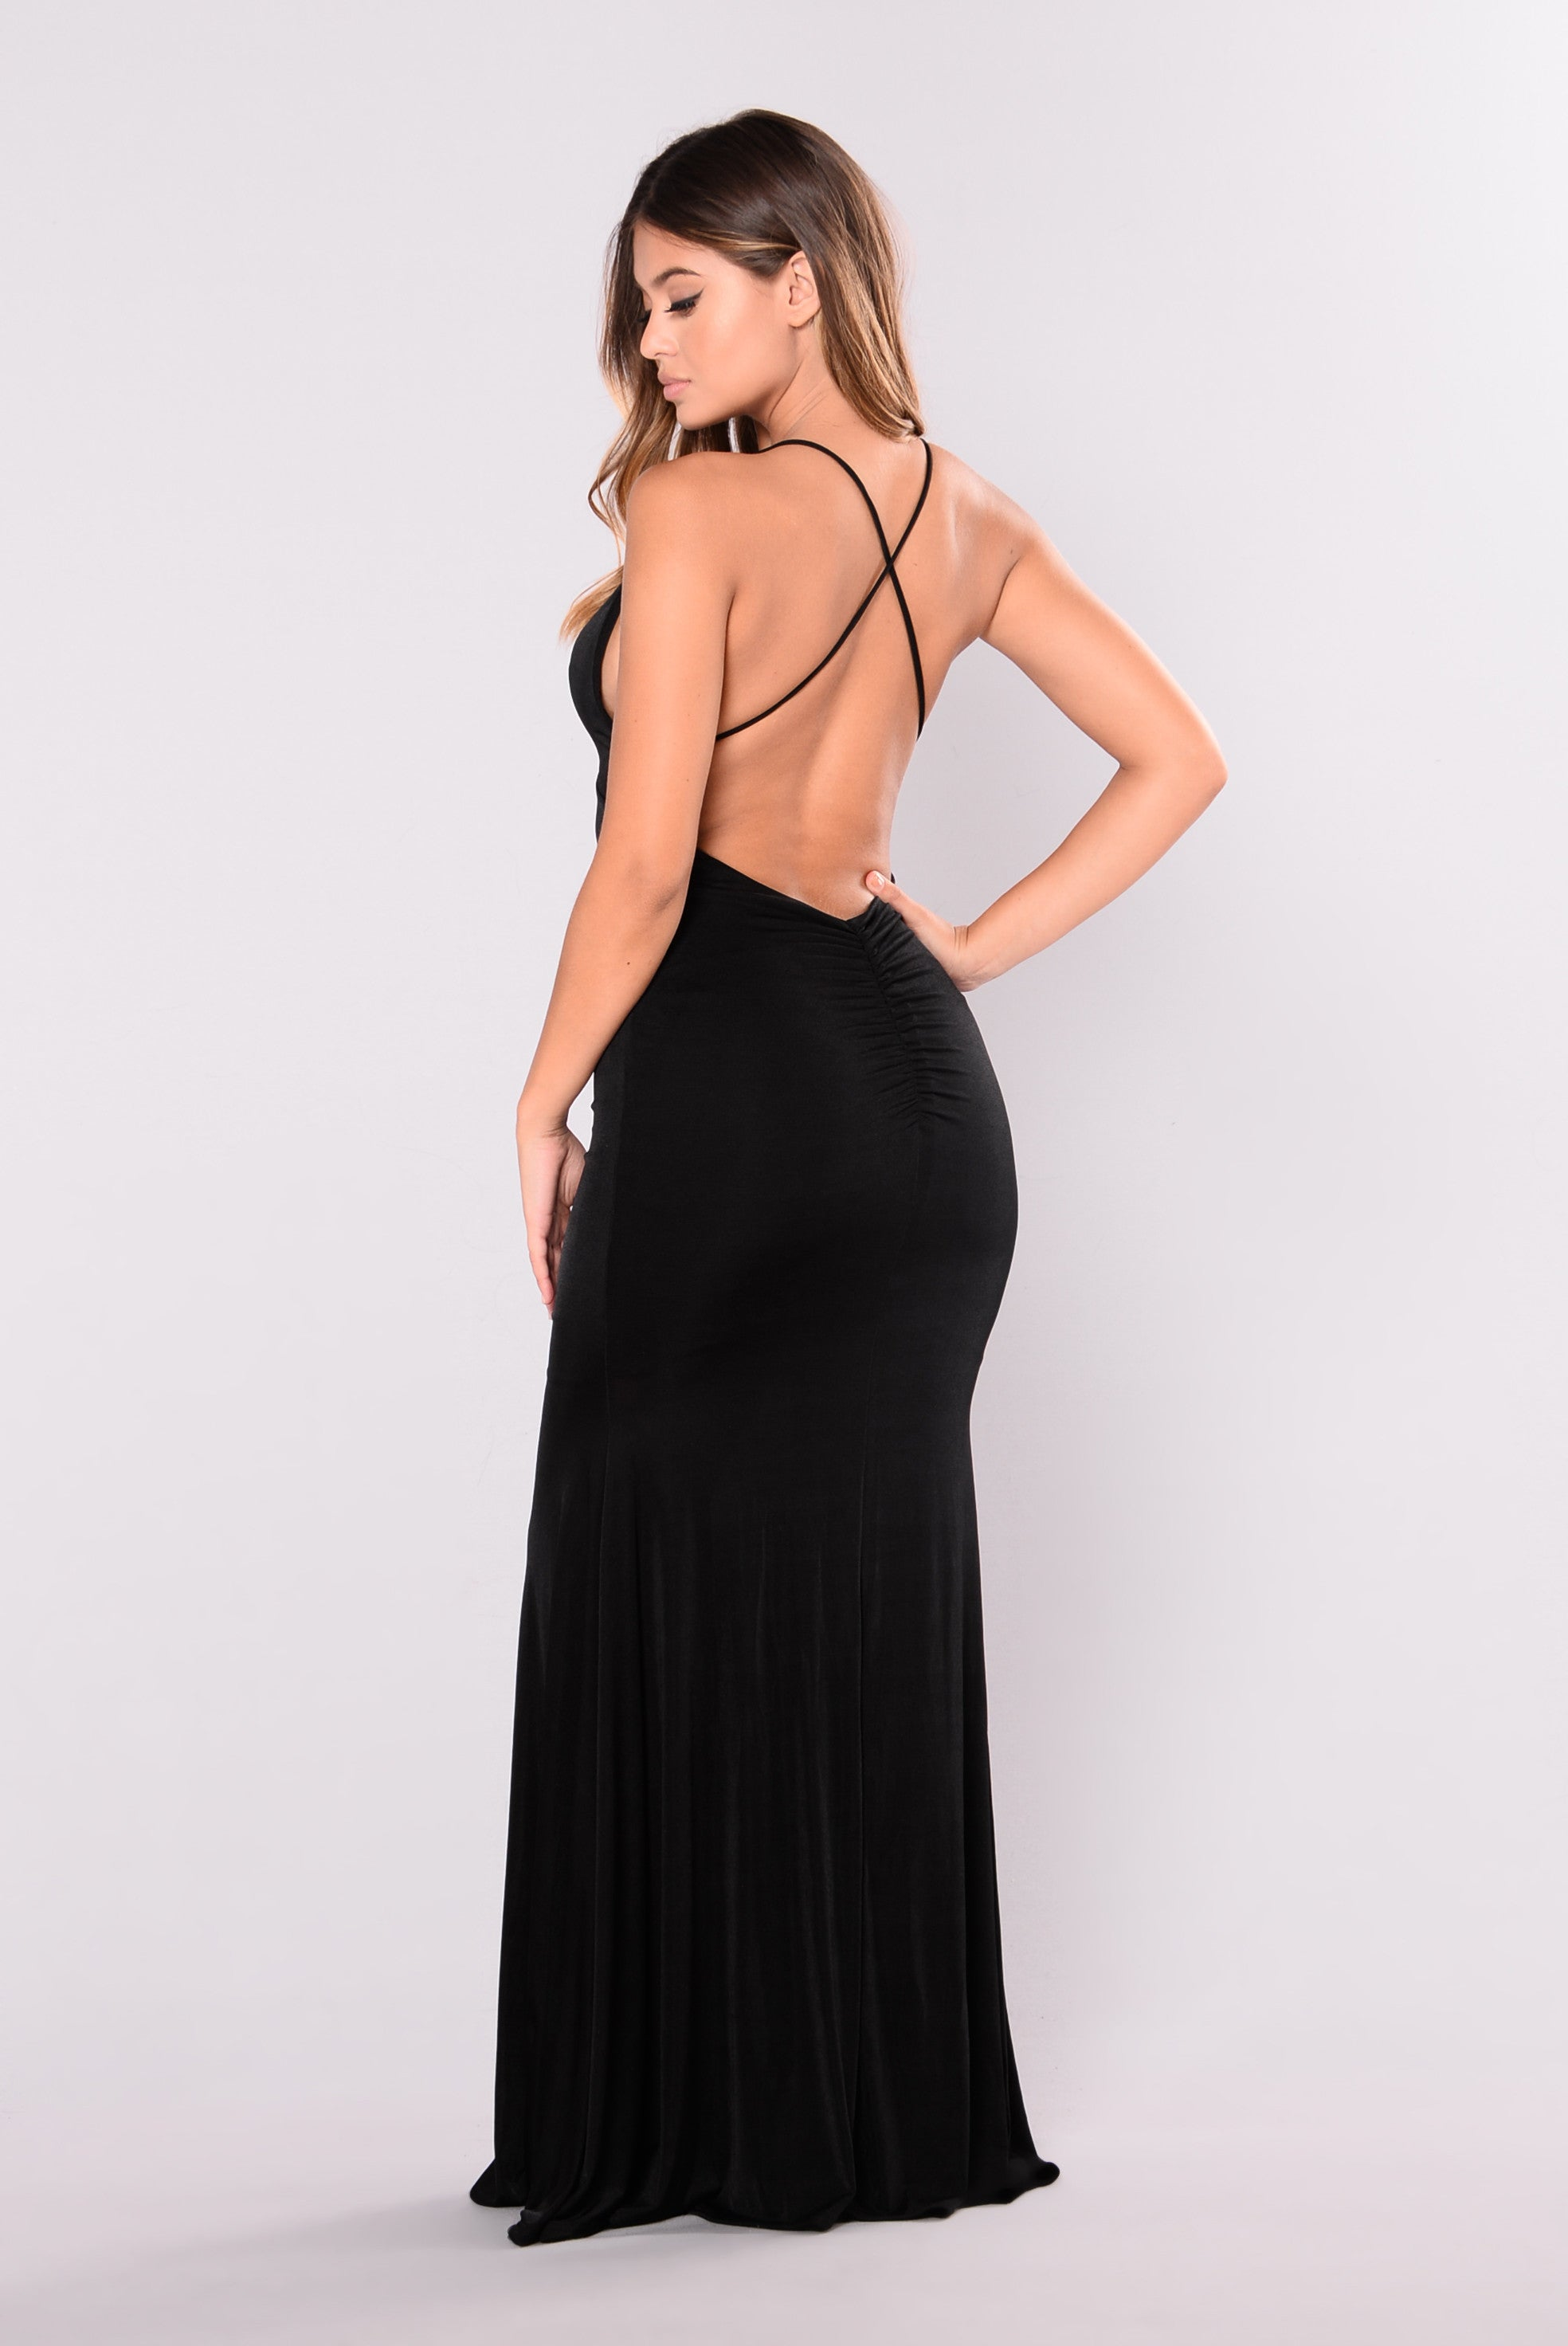 The little black dress has always been a wardrobe staple for women. It allows endless possibilities for accessorizing. With a clean slate like a black dress, you can create any look for any occasion by adding style elements including color and texture.